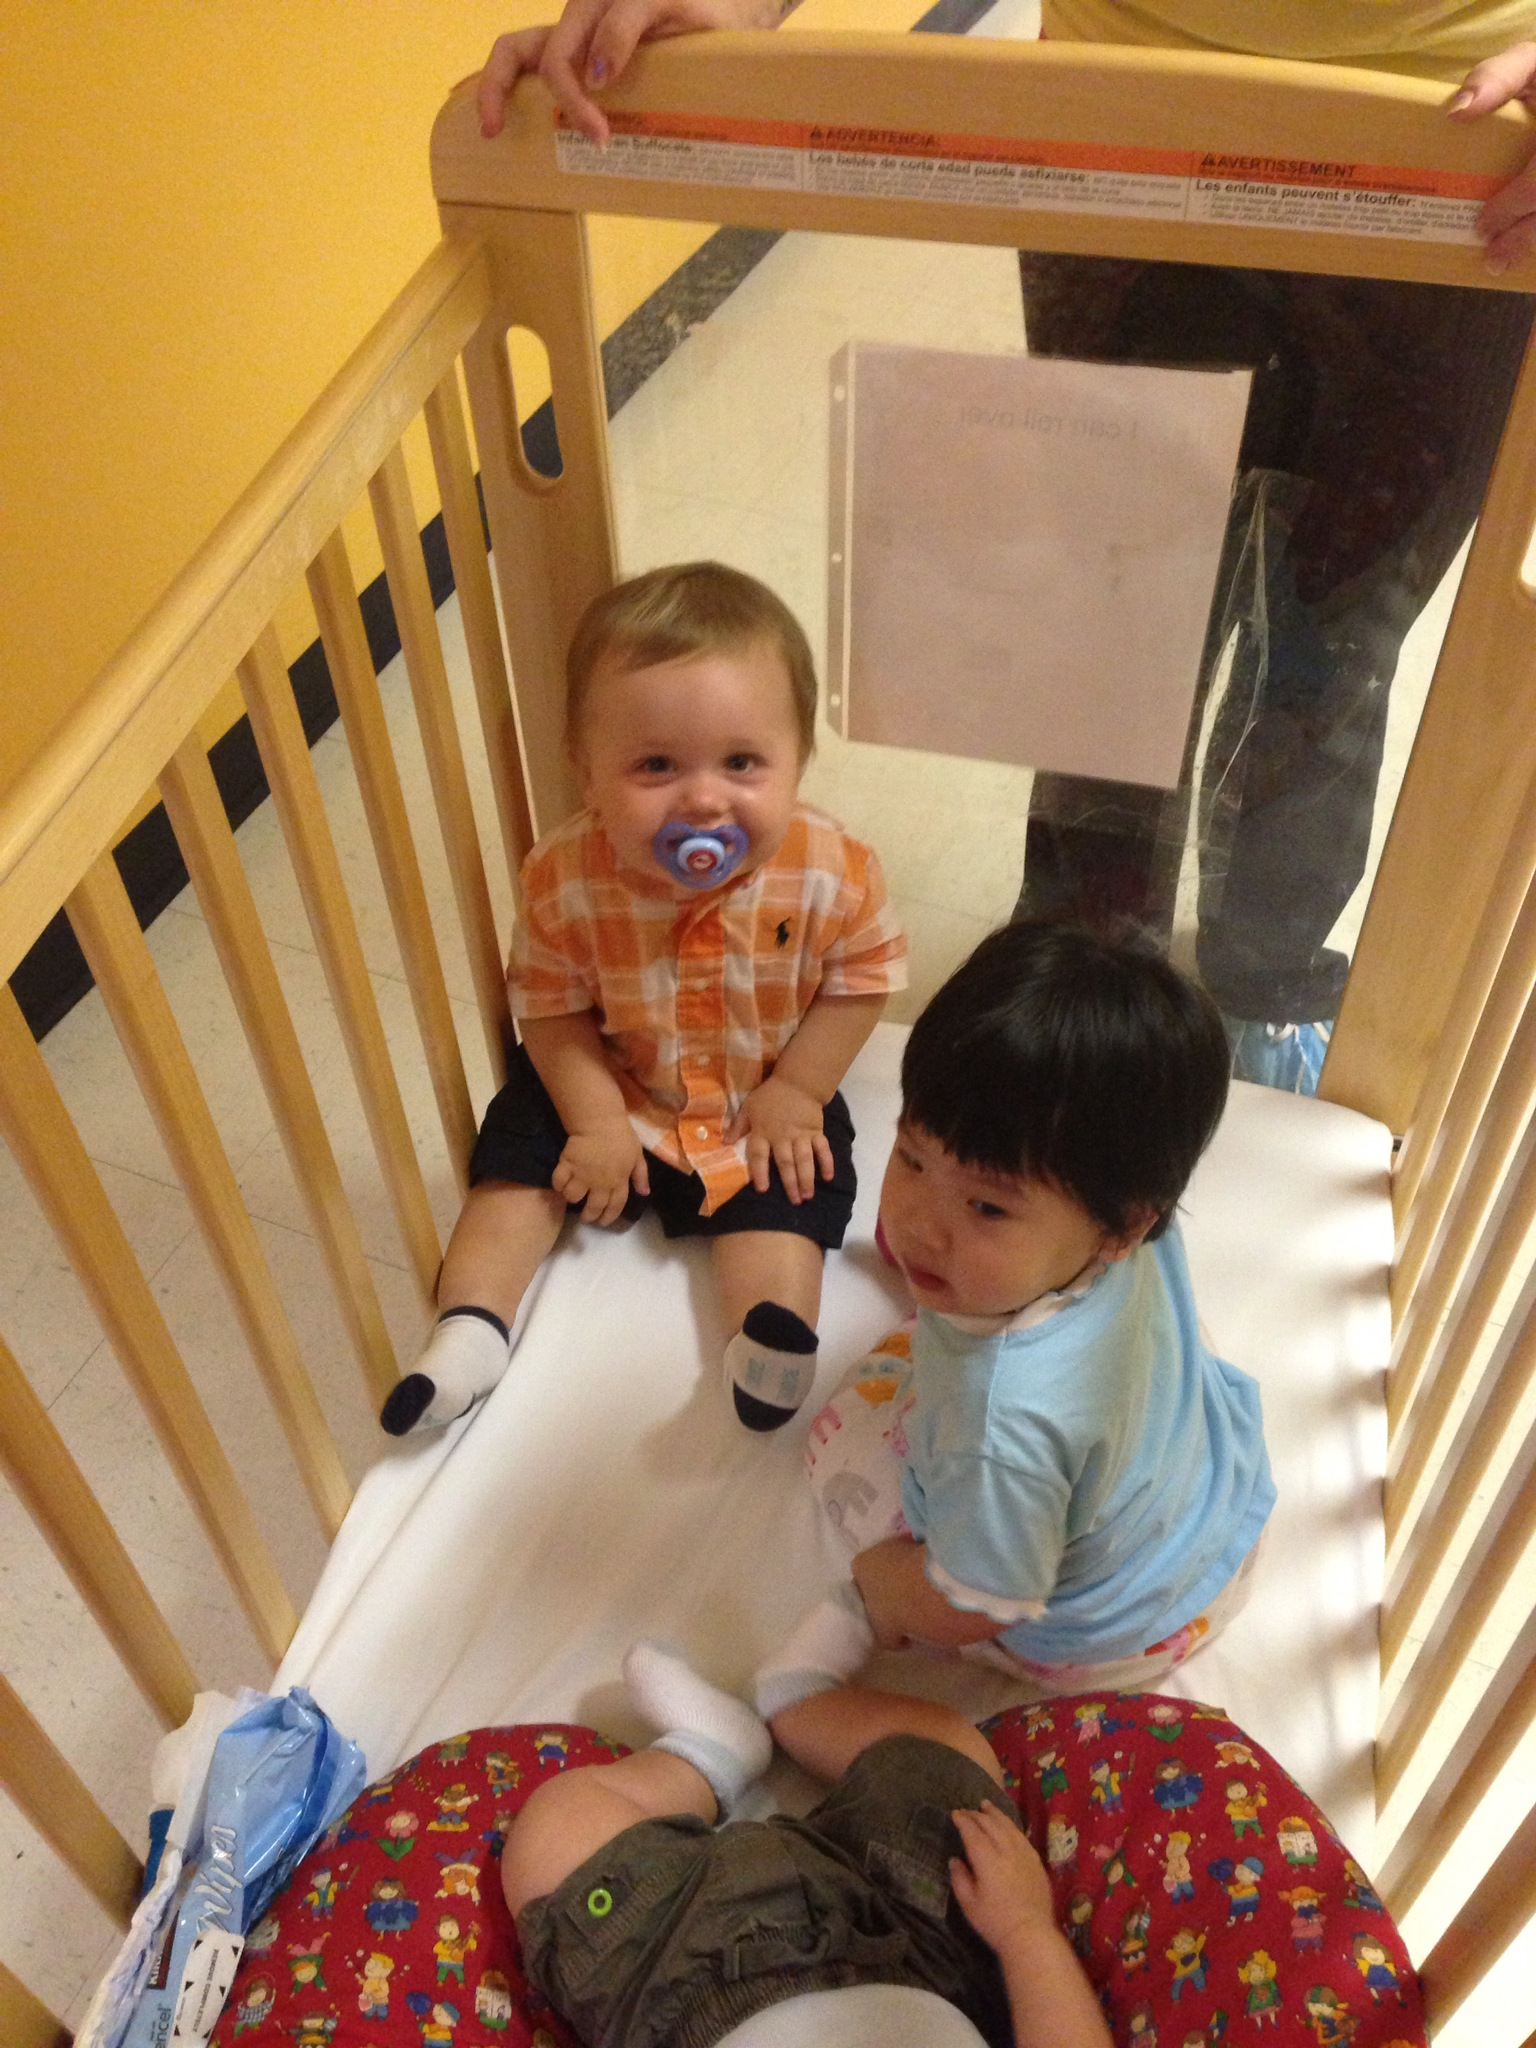 Making New Friends at Daycare